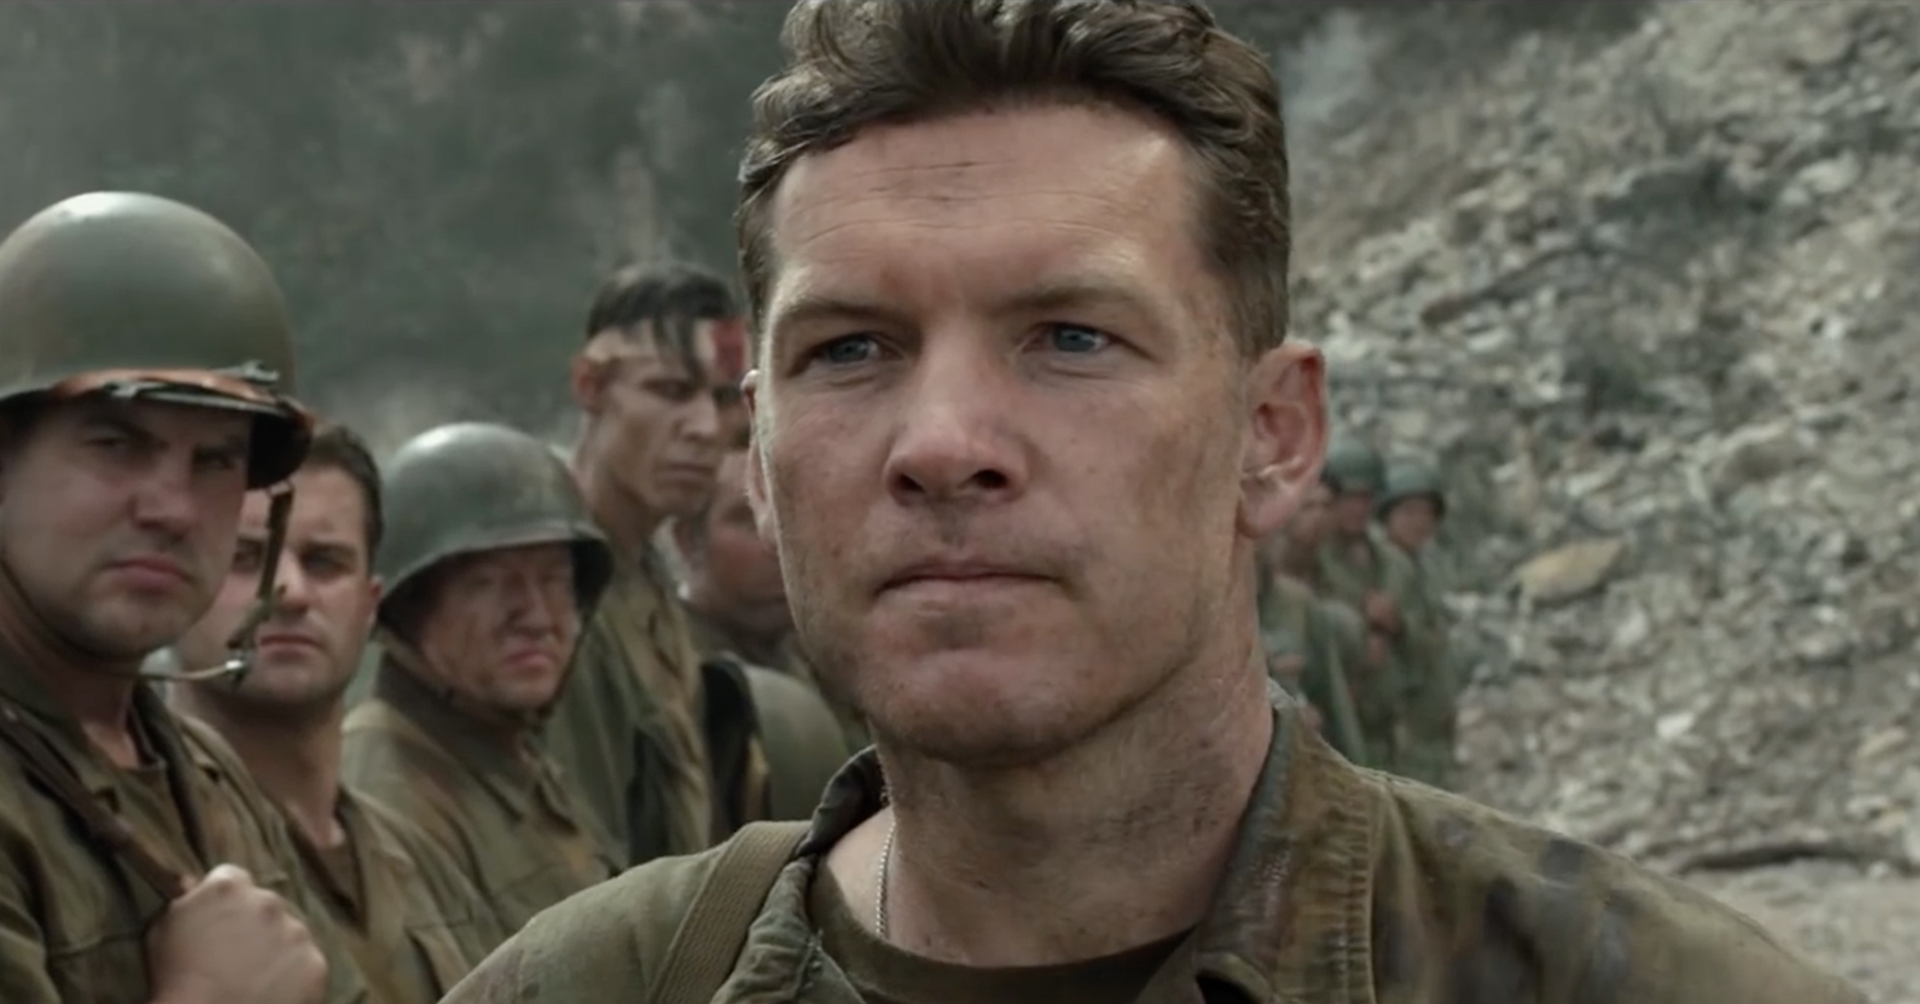 Hacksaw Ridge Screenwriter Robert Schenkkan Talks Heroism and Writing Battlegrounds